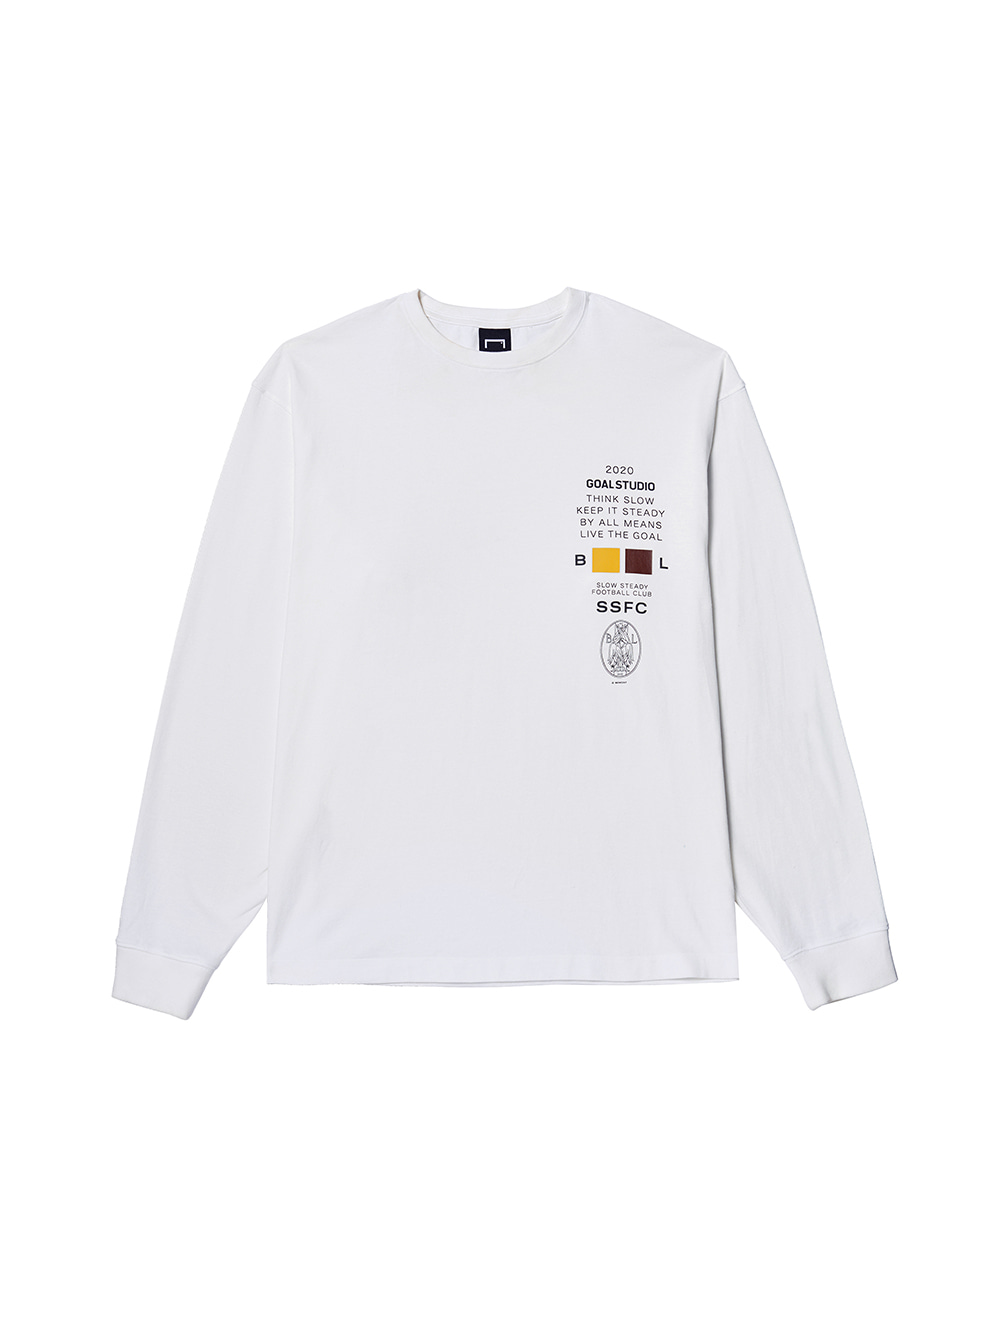 GOALSTUDIO SSFC JERSEY SINGLE LONG SLEEVE - WHITE